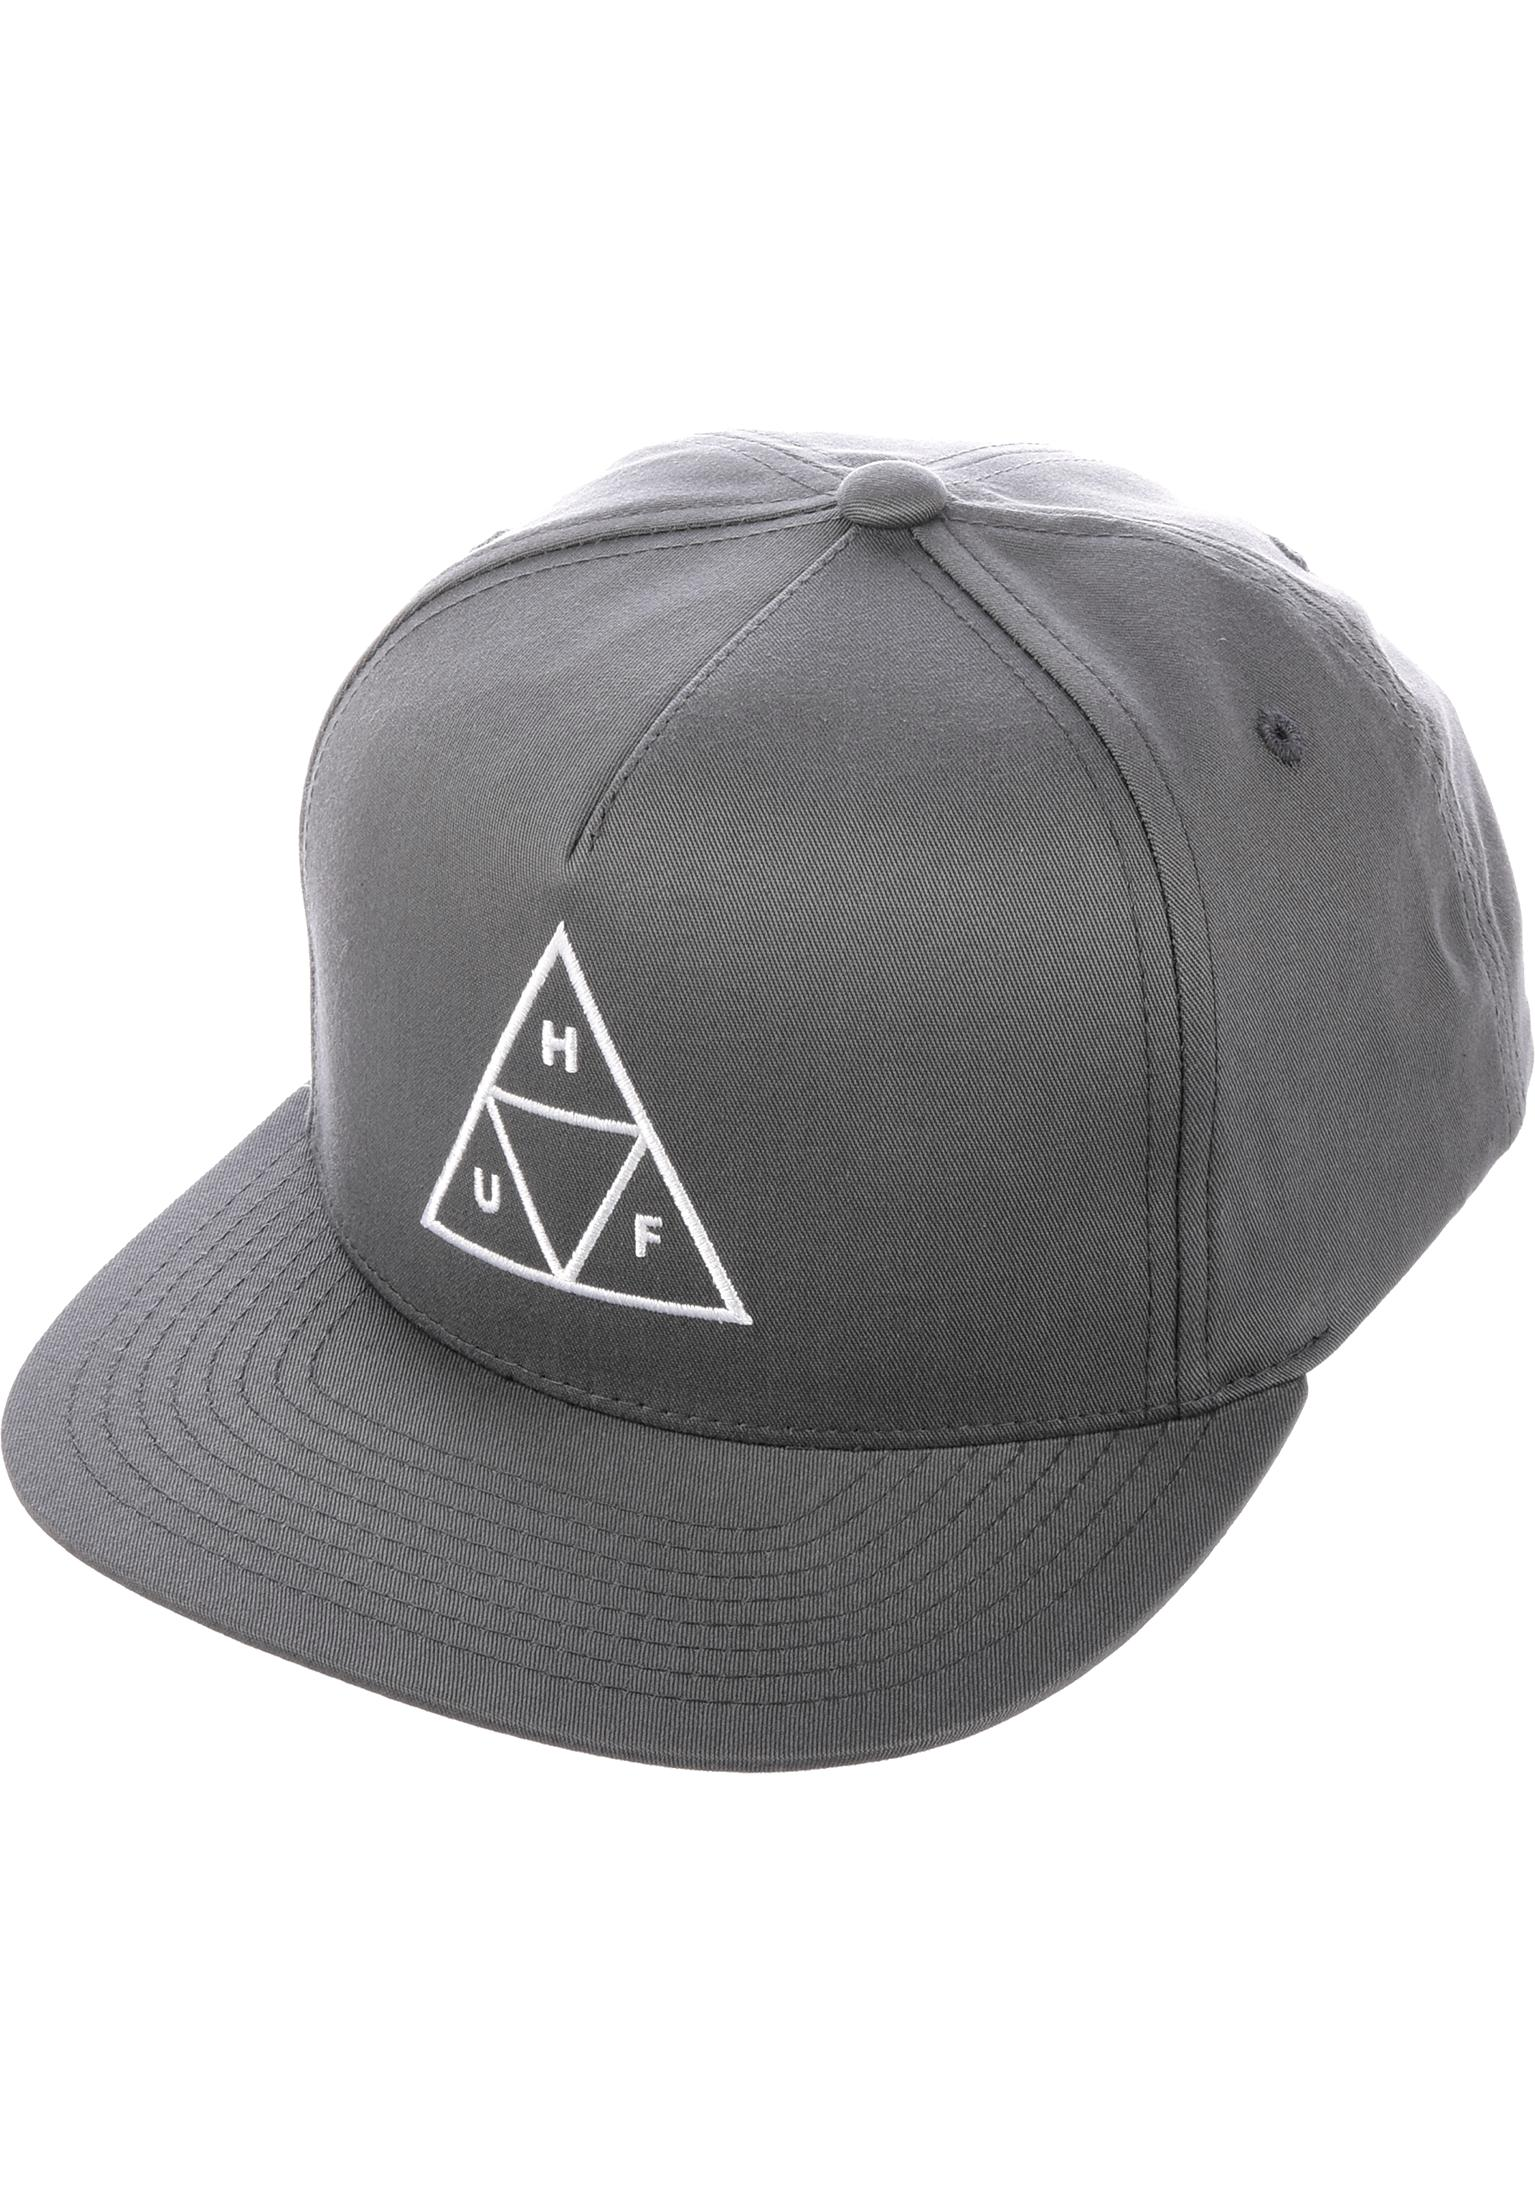 Triple Triangle Snapback HUF Caps in charcoal for Men  87d7c23eeb35